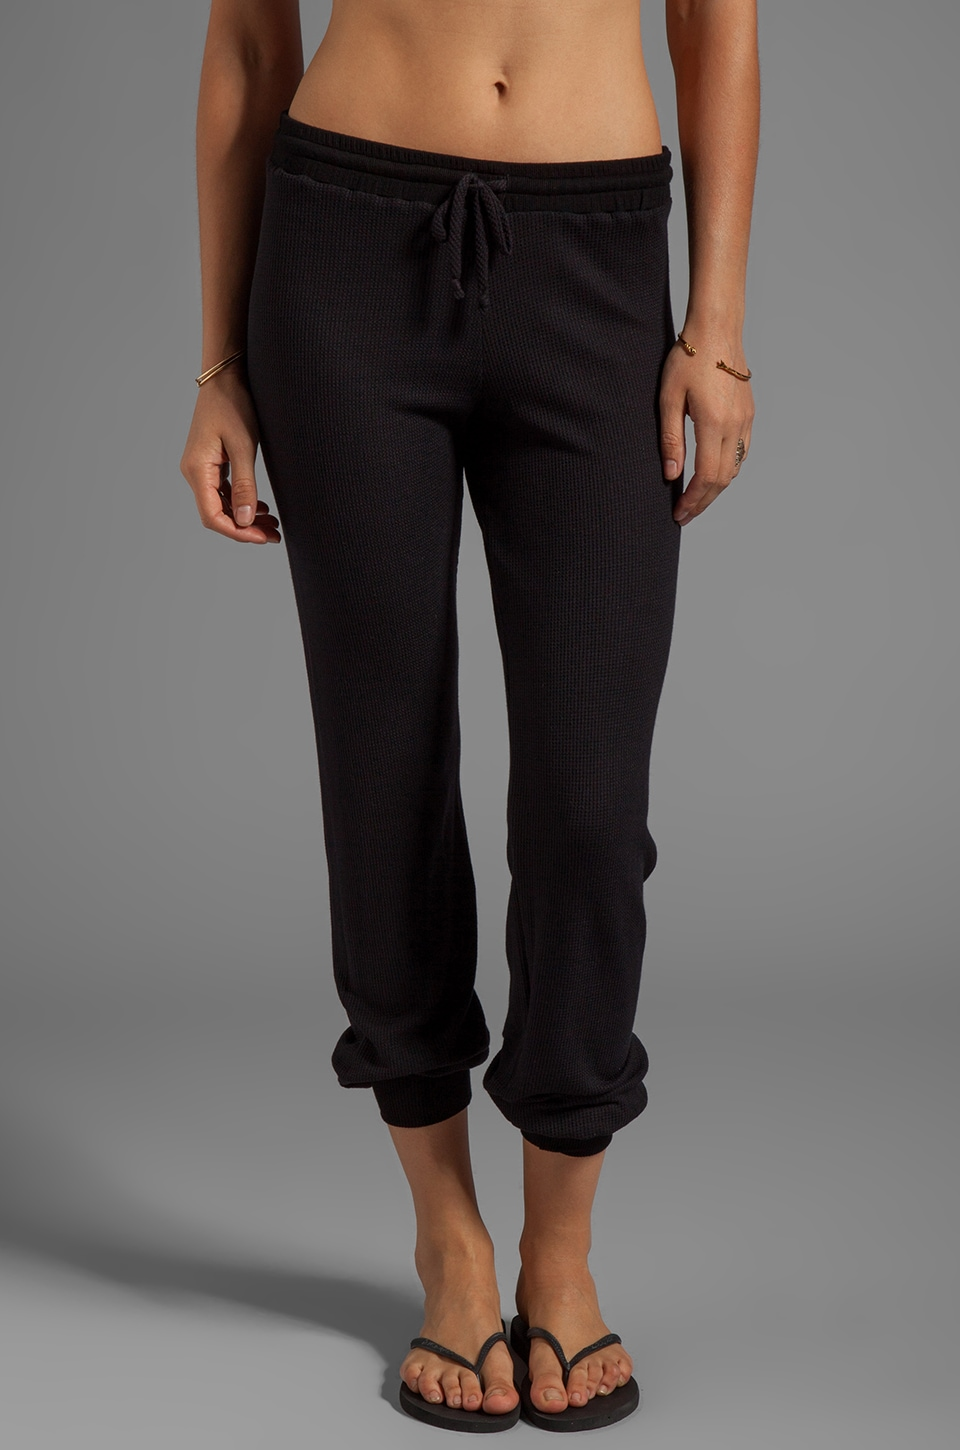 Feel the Piece Thermal Jamie Draw String Pant in Black